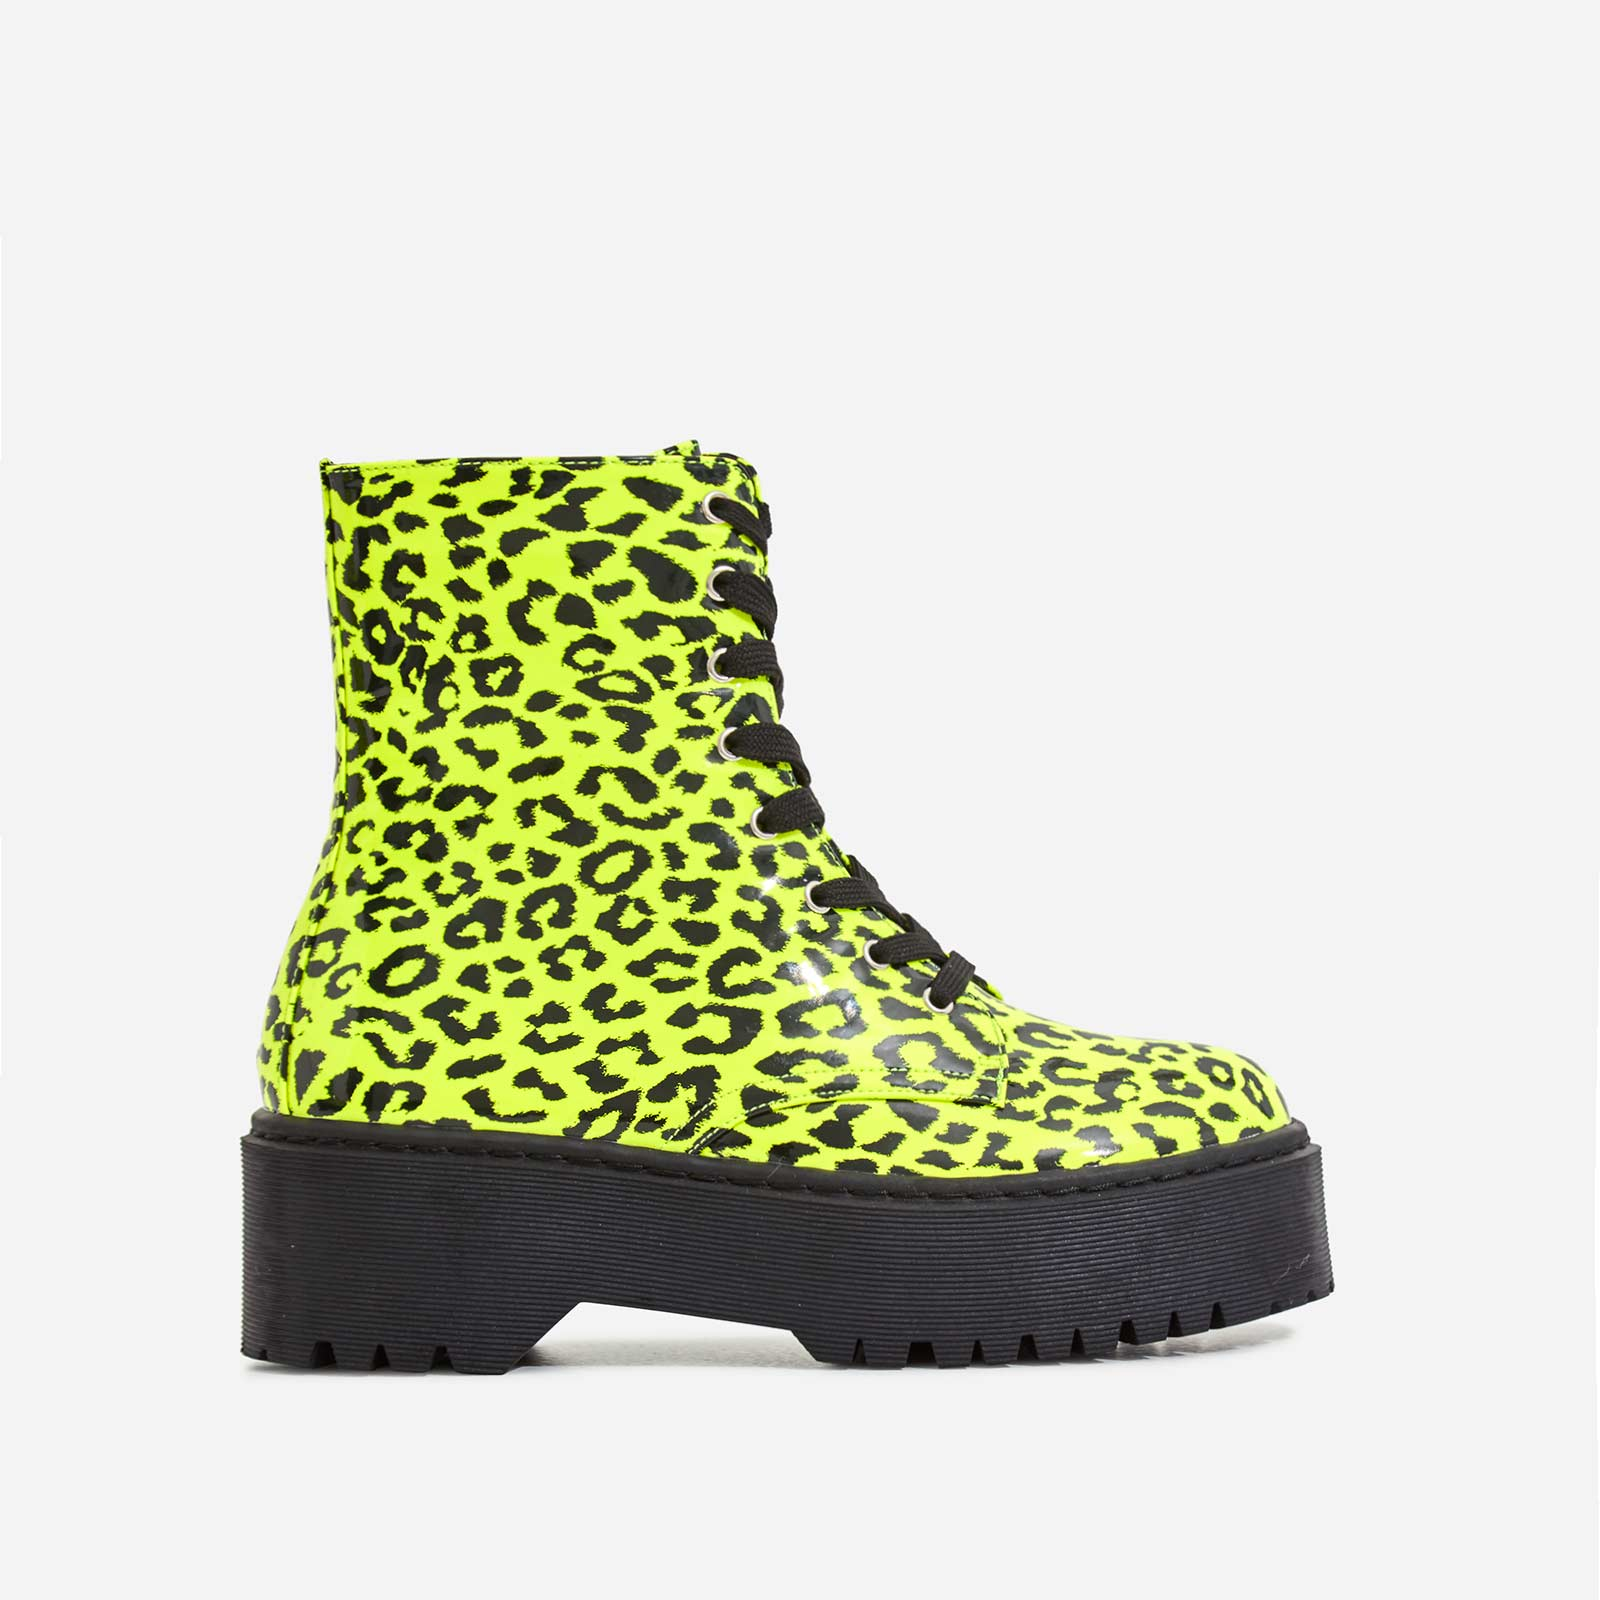 Poppin Lace Up Ankle Biker Boot In Neon Yellow Leopard Print Patent